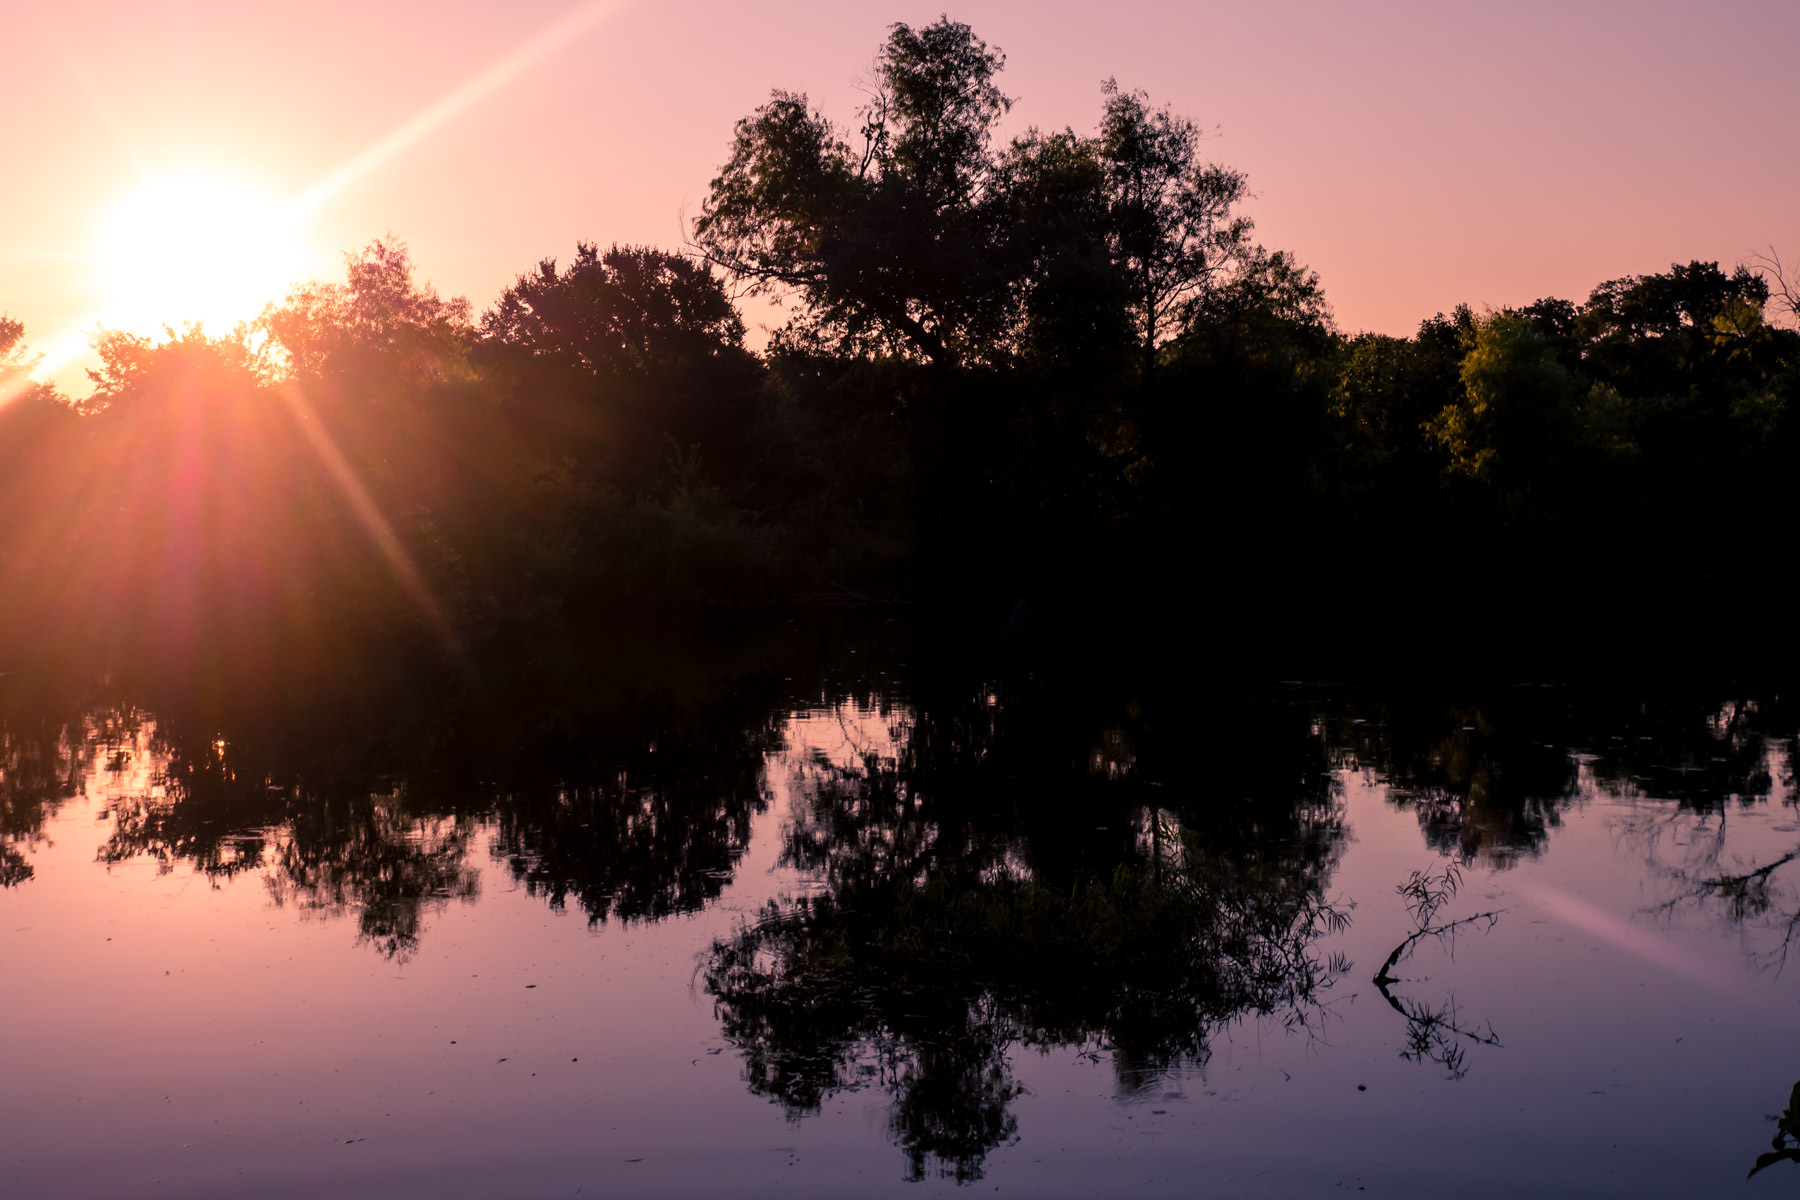 The sun rises over a pond at the Arbor Hills Nature Preserve in Plano, Texas.